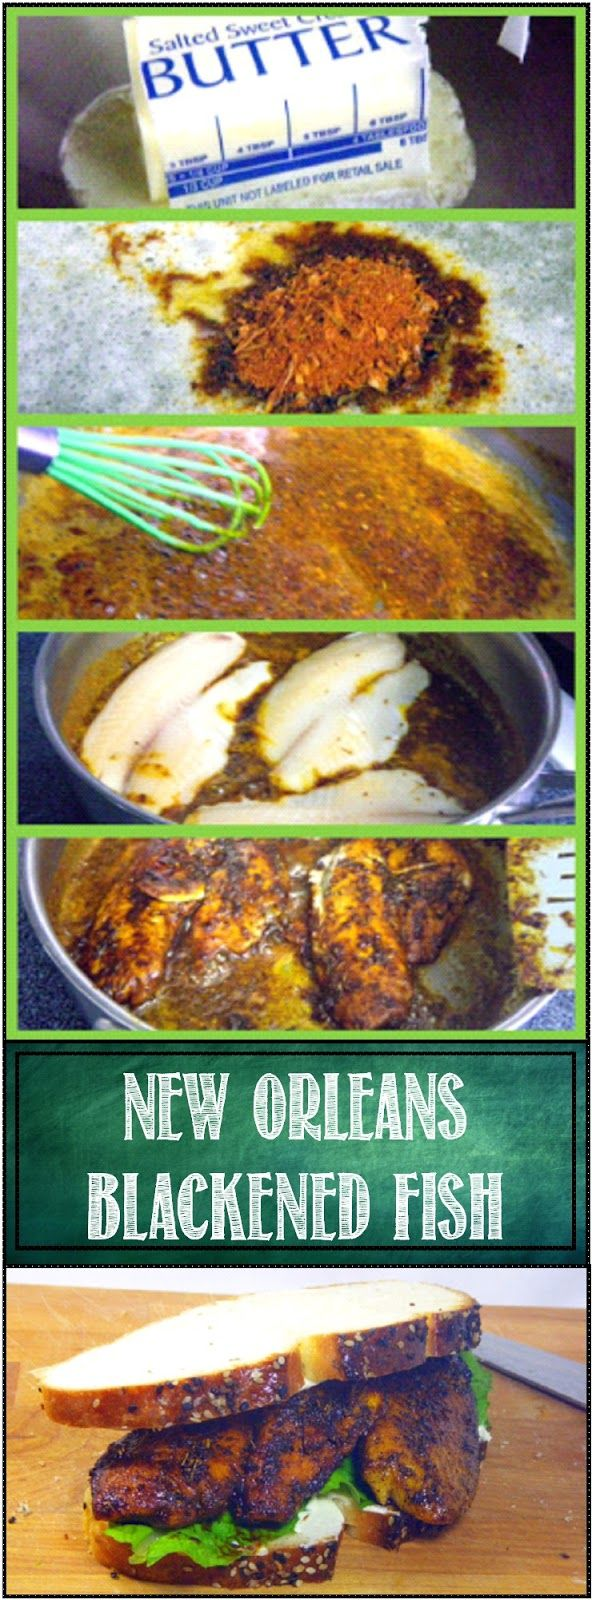 New Orleans Blackened Fish - PERFECT Every Time... FAST and EASY (so fast, 5 minutes from freezer to sandwich meat). WITH THE INCREDIBLE FLAVORS OF BLACKENING Spices, the Cajun legend come home. So fast, so easy and laissez les bons temps rouler... As they say in the Crescent City... Let the Good Times Roll... Indeed